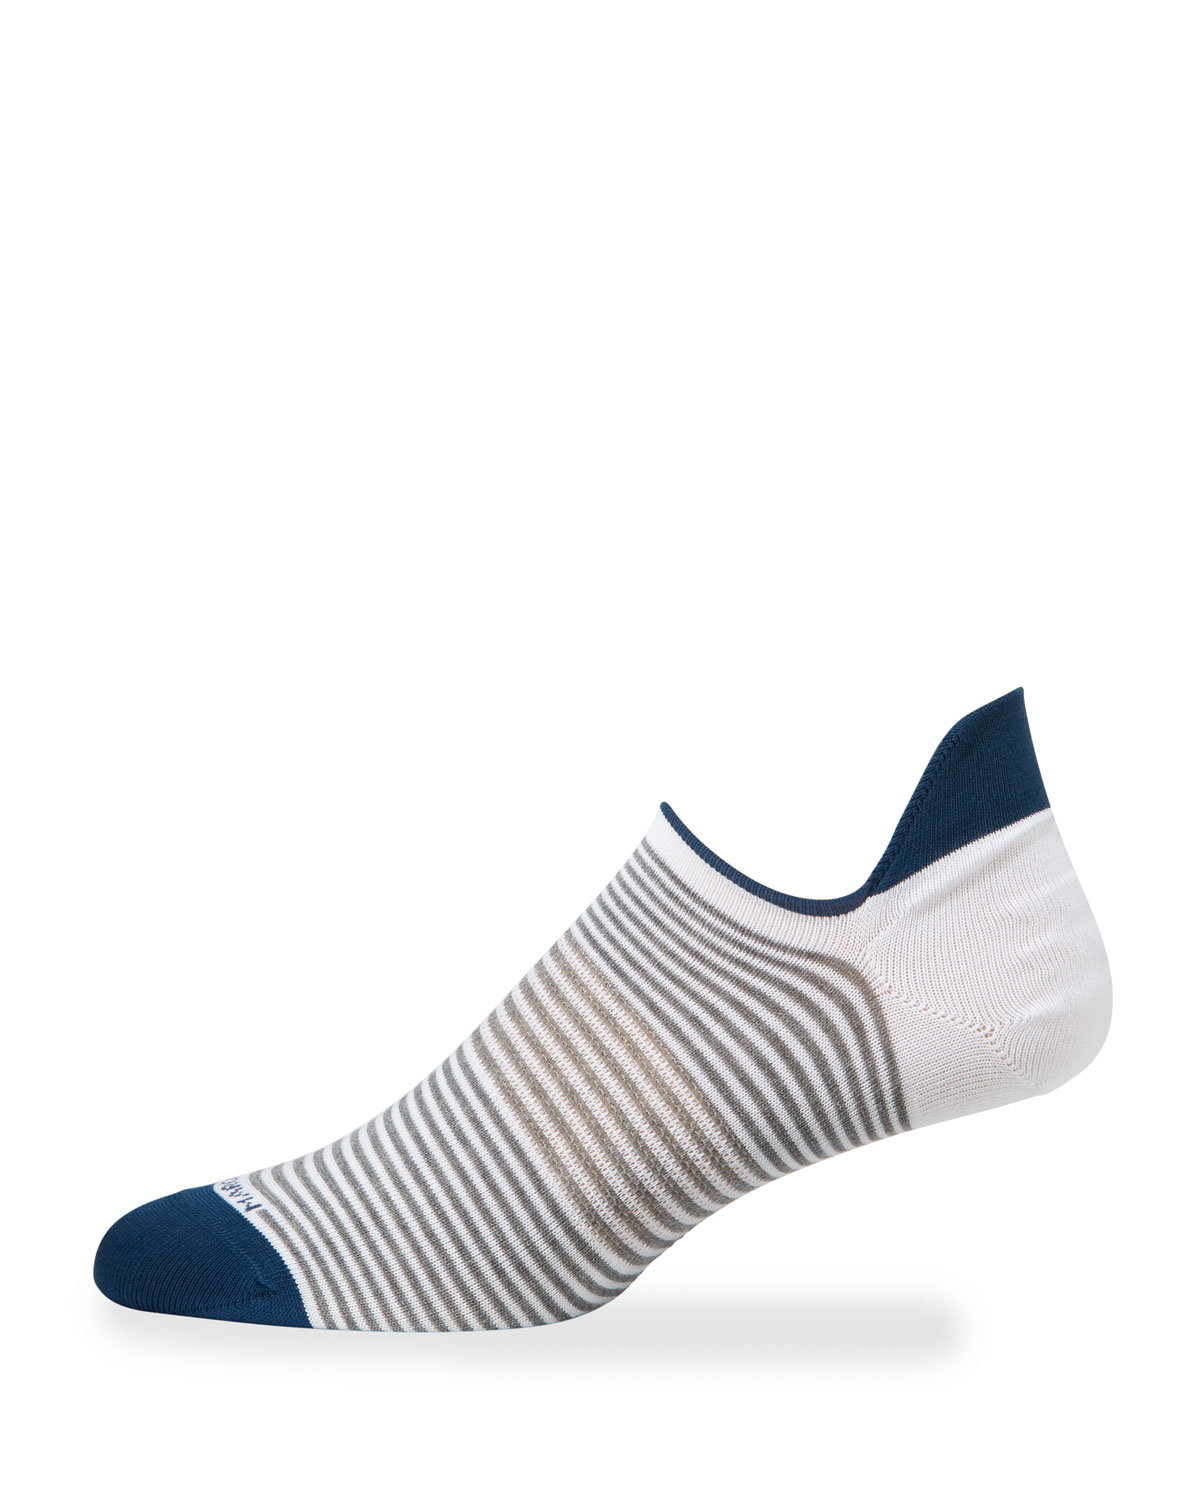 Marcoliani Men's No-Show Cotton Socks